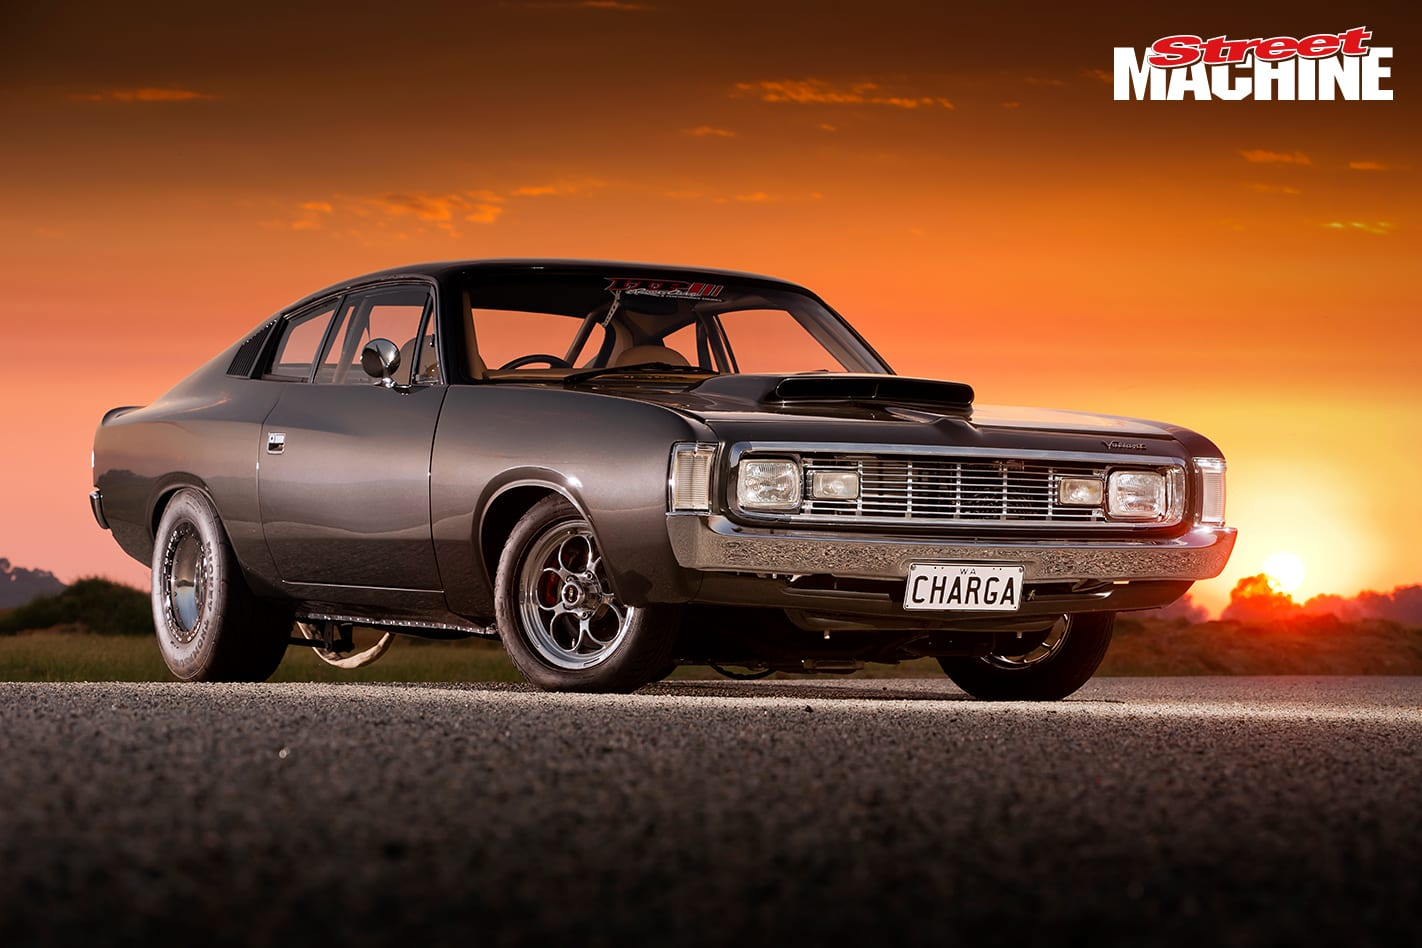 VH Valiant Charger 10 Nw